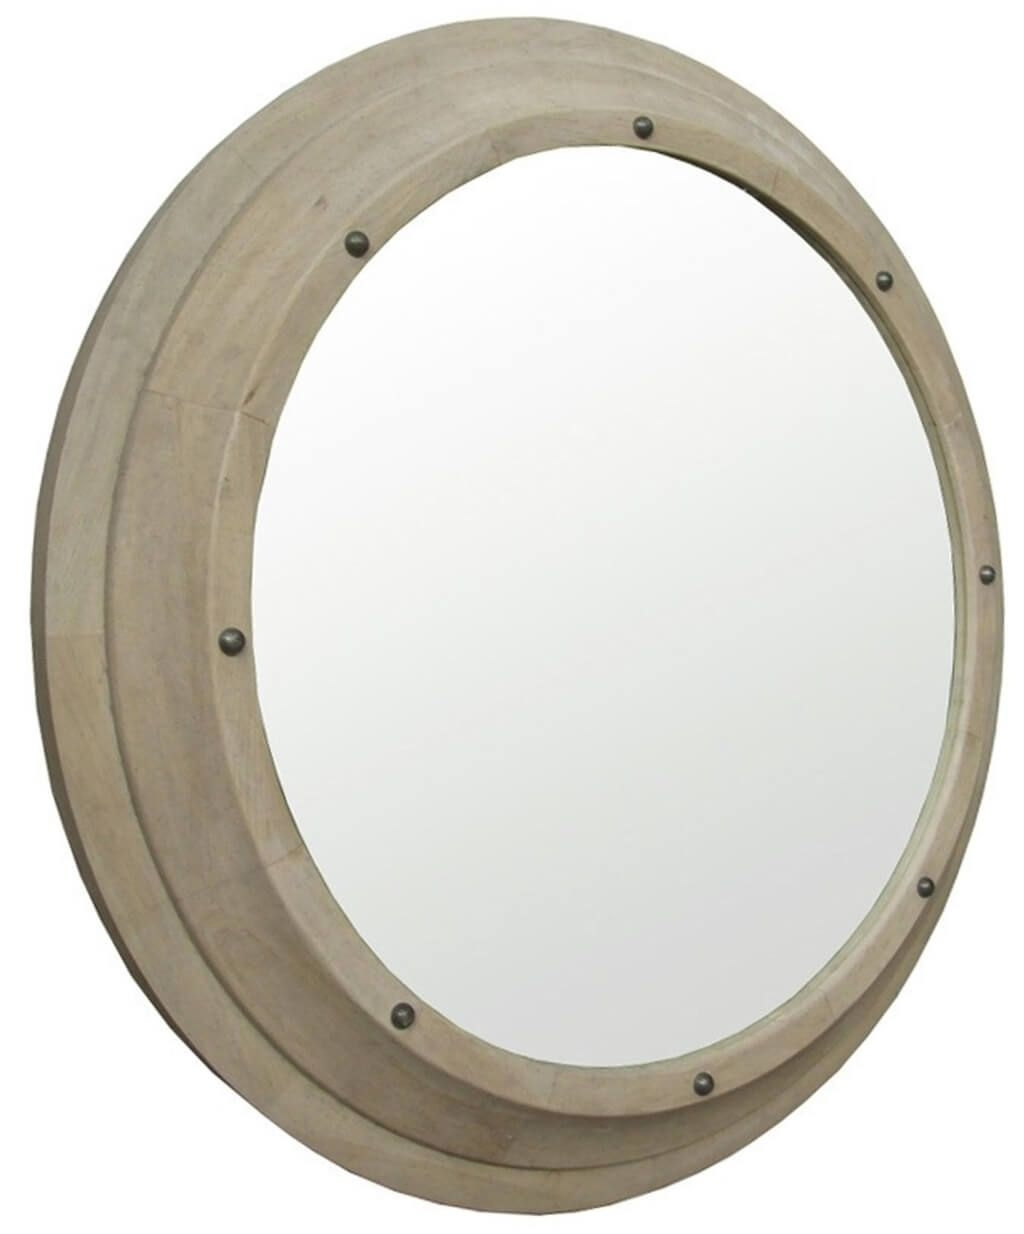 Home Decoration Best Rustic Porthole Mirror Decorative Porthole Pertaining To Chrome Porthole Mirror (View 7 of 15)